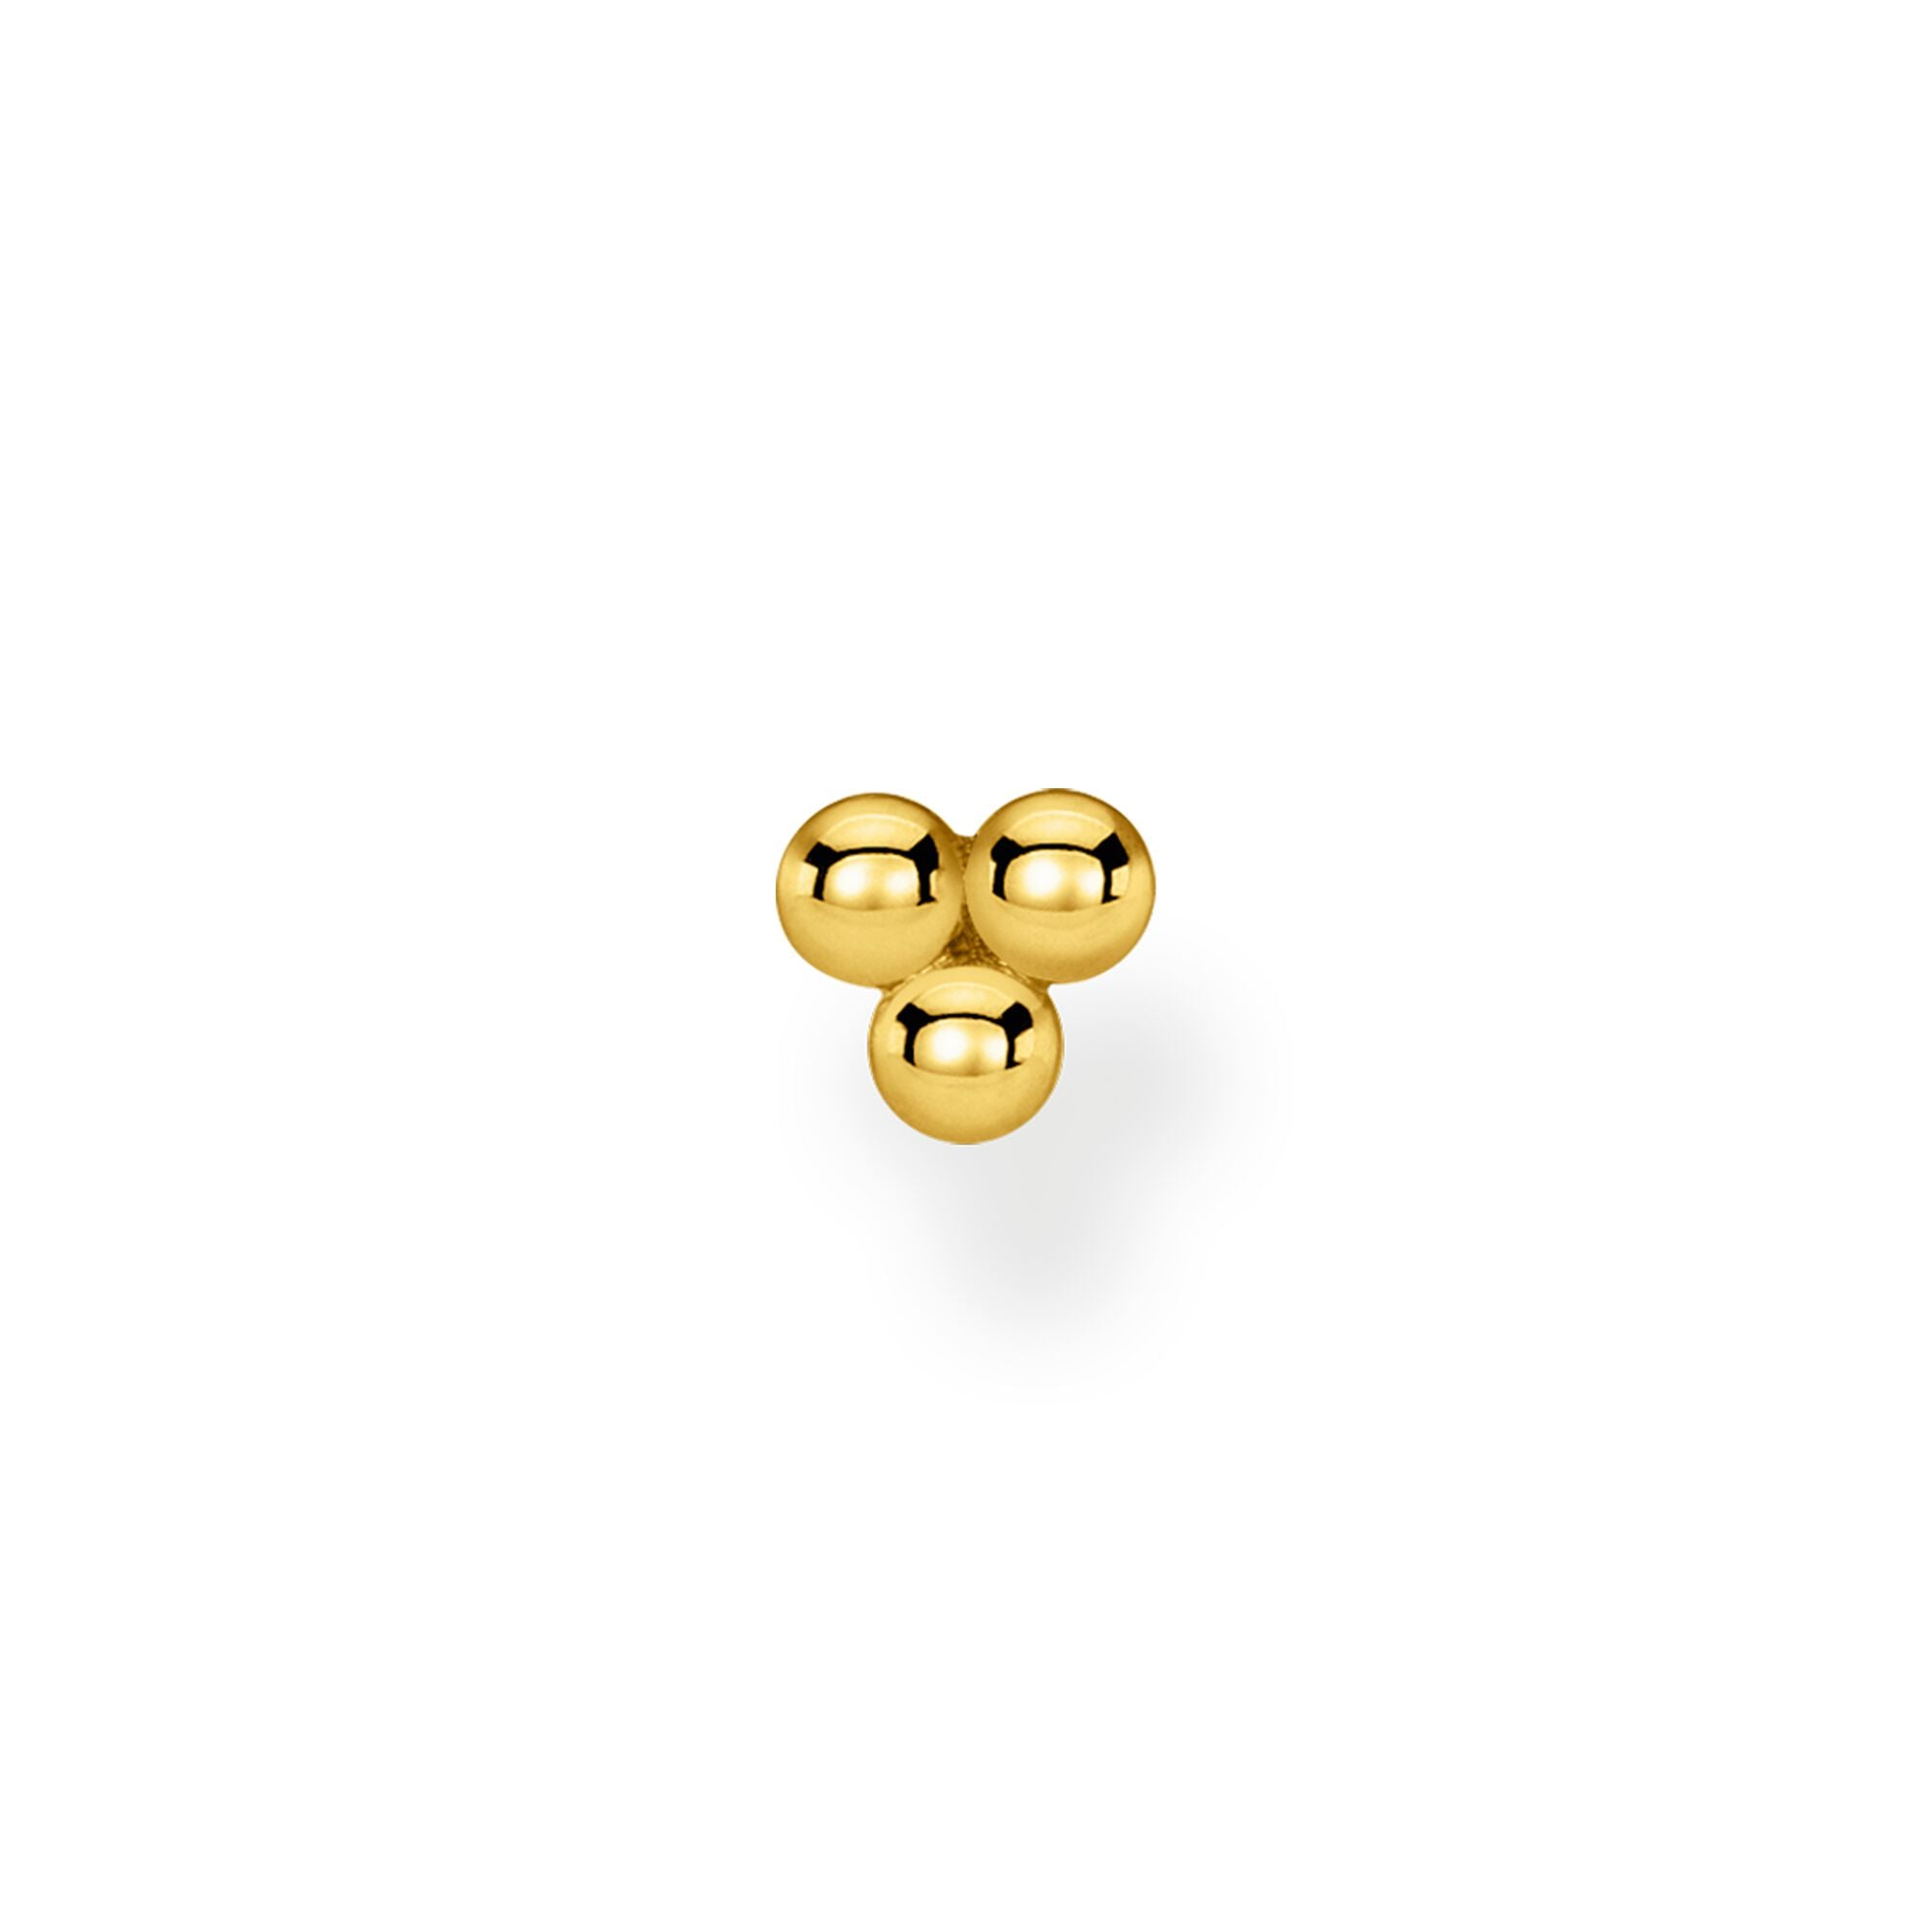 Thomas Sabo, Sterling Silver, Yellow Gold Plated, Single Earring Stud, Trinity Dots, Push backing, Ottawa